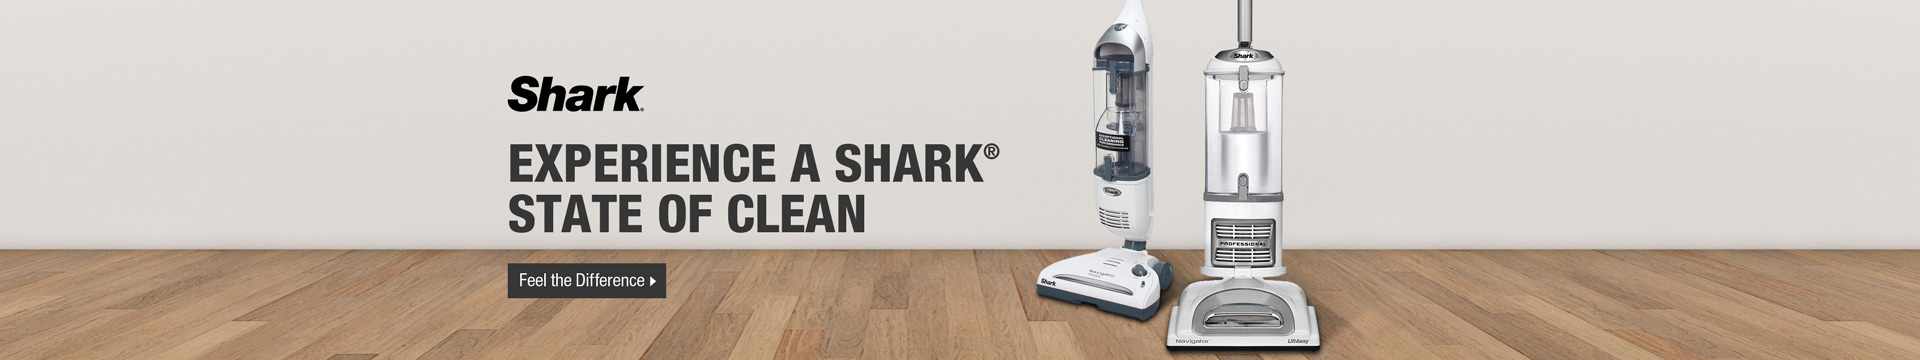 Experience a Shark State of Clean